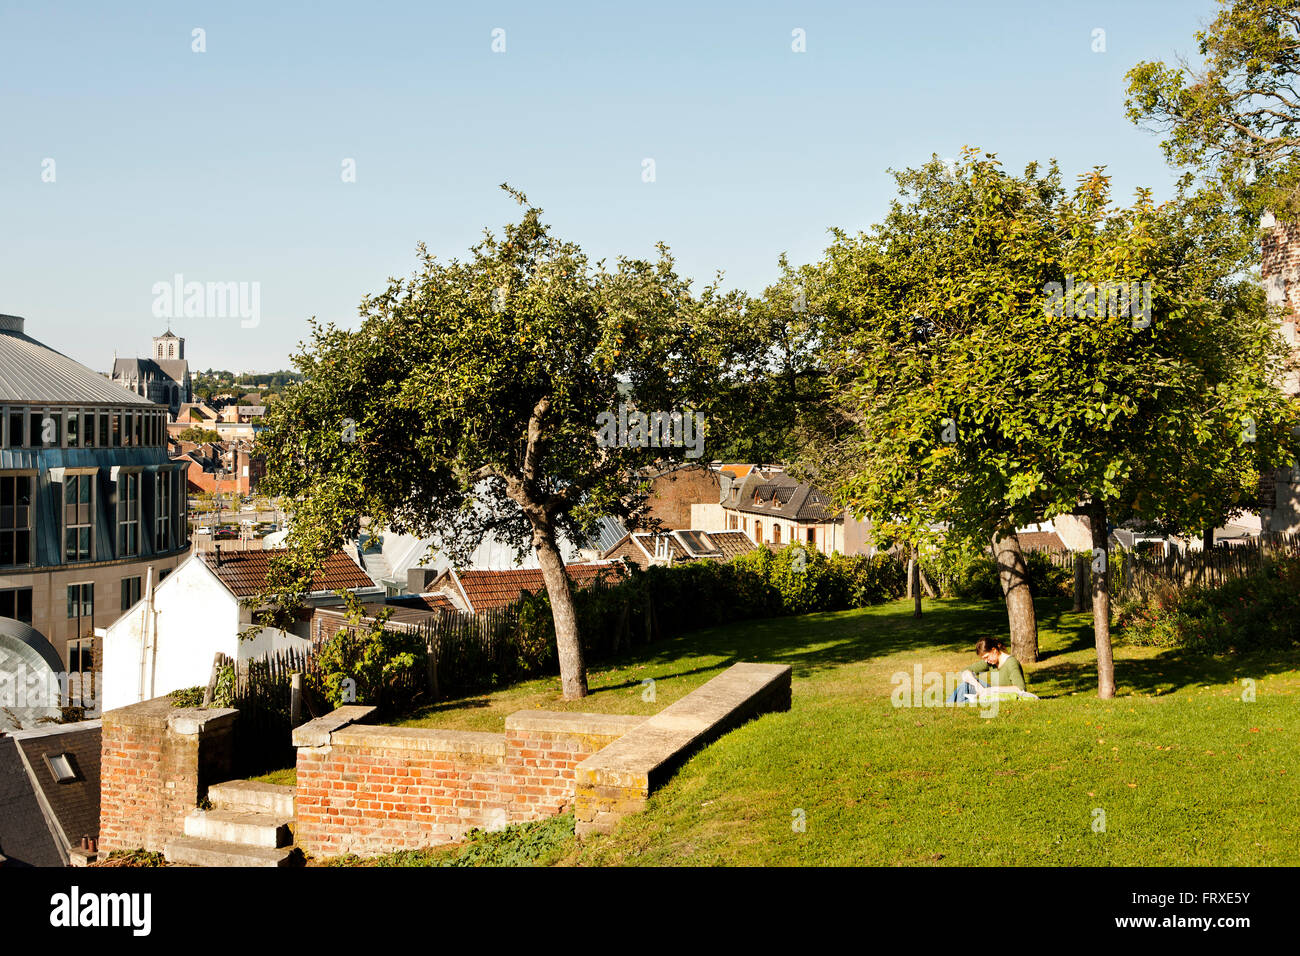 Liege Terrasse Terrasses Des Minimes Terraced Gardens Stock Photos Terrasses